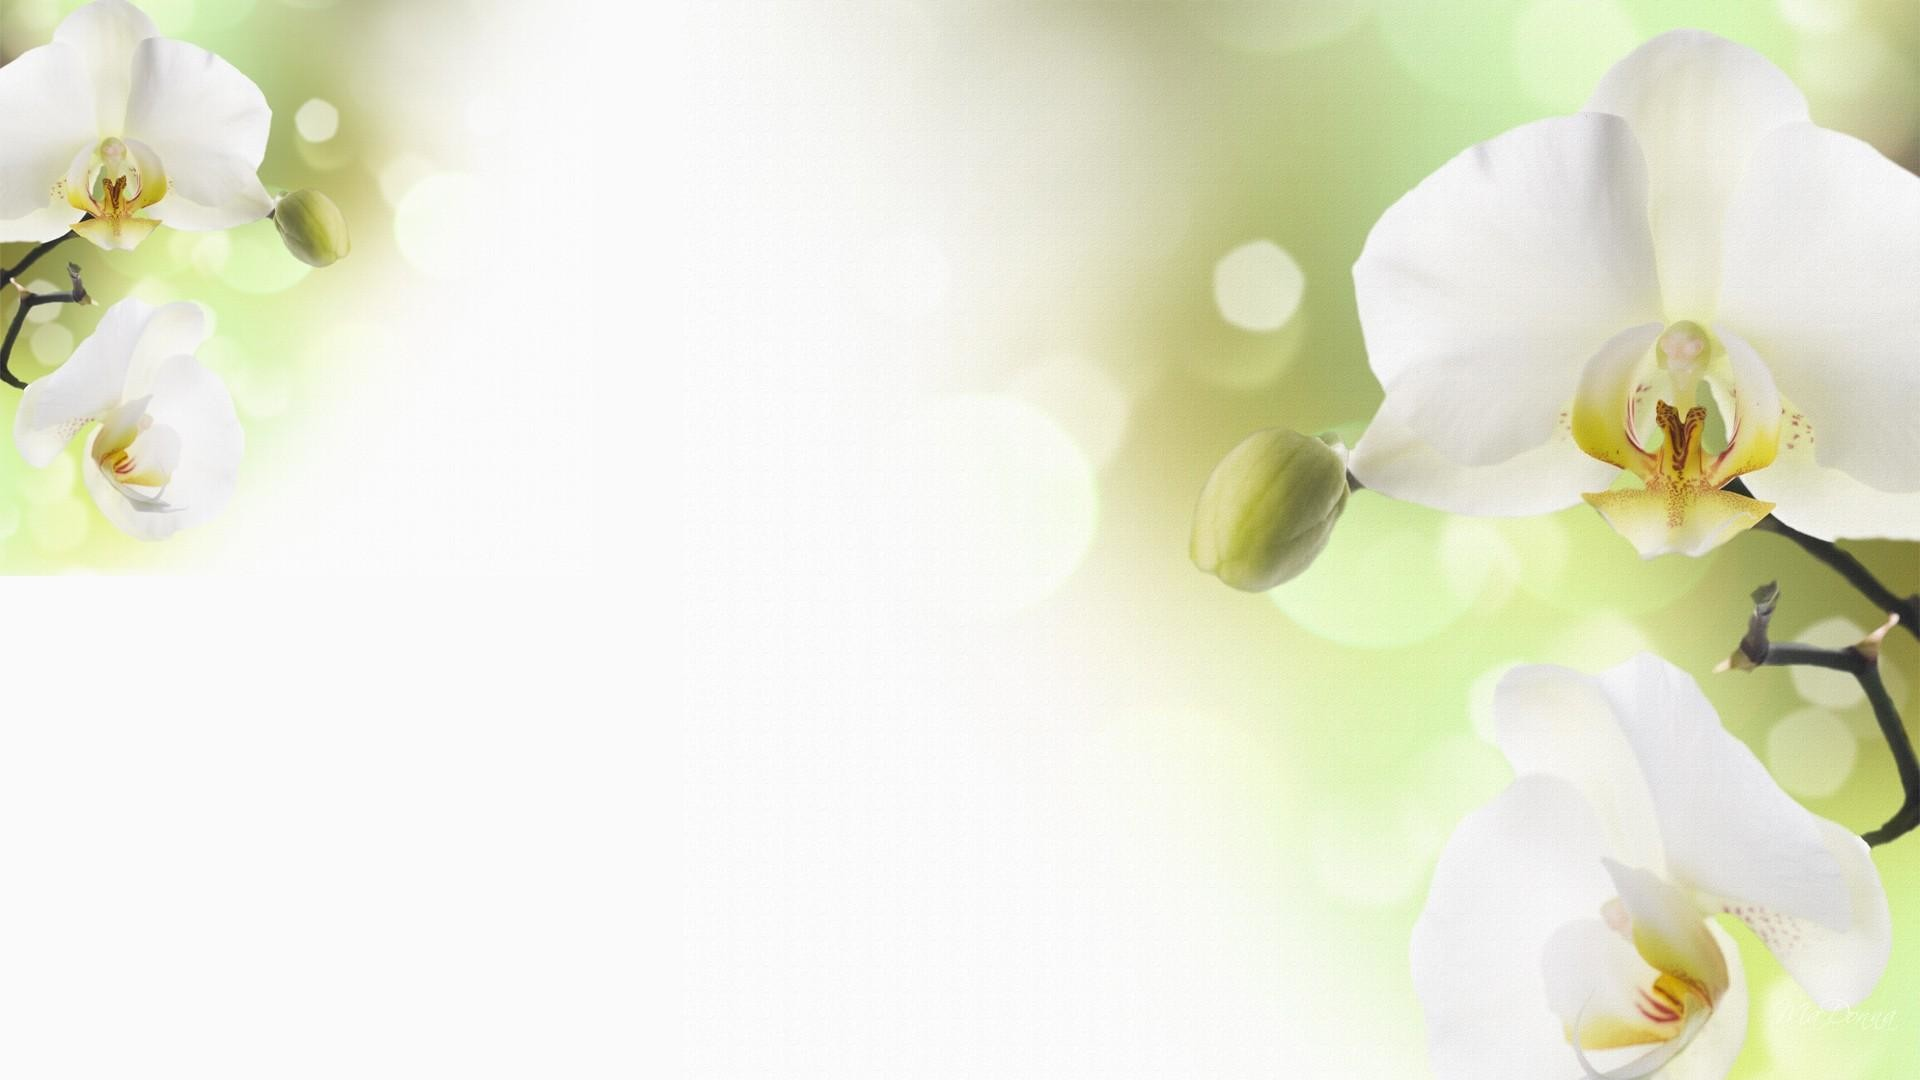 White Orchid Wallpaper (60+ images)